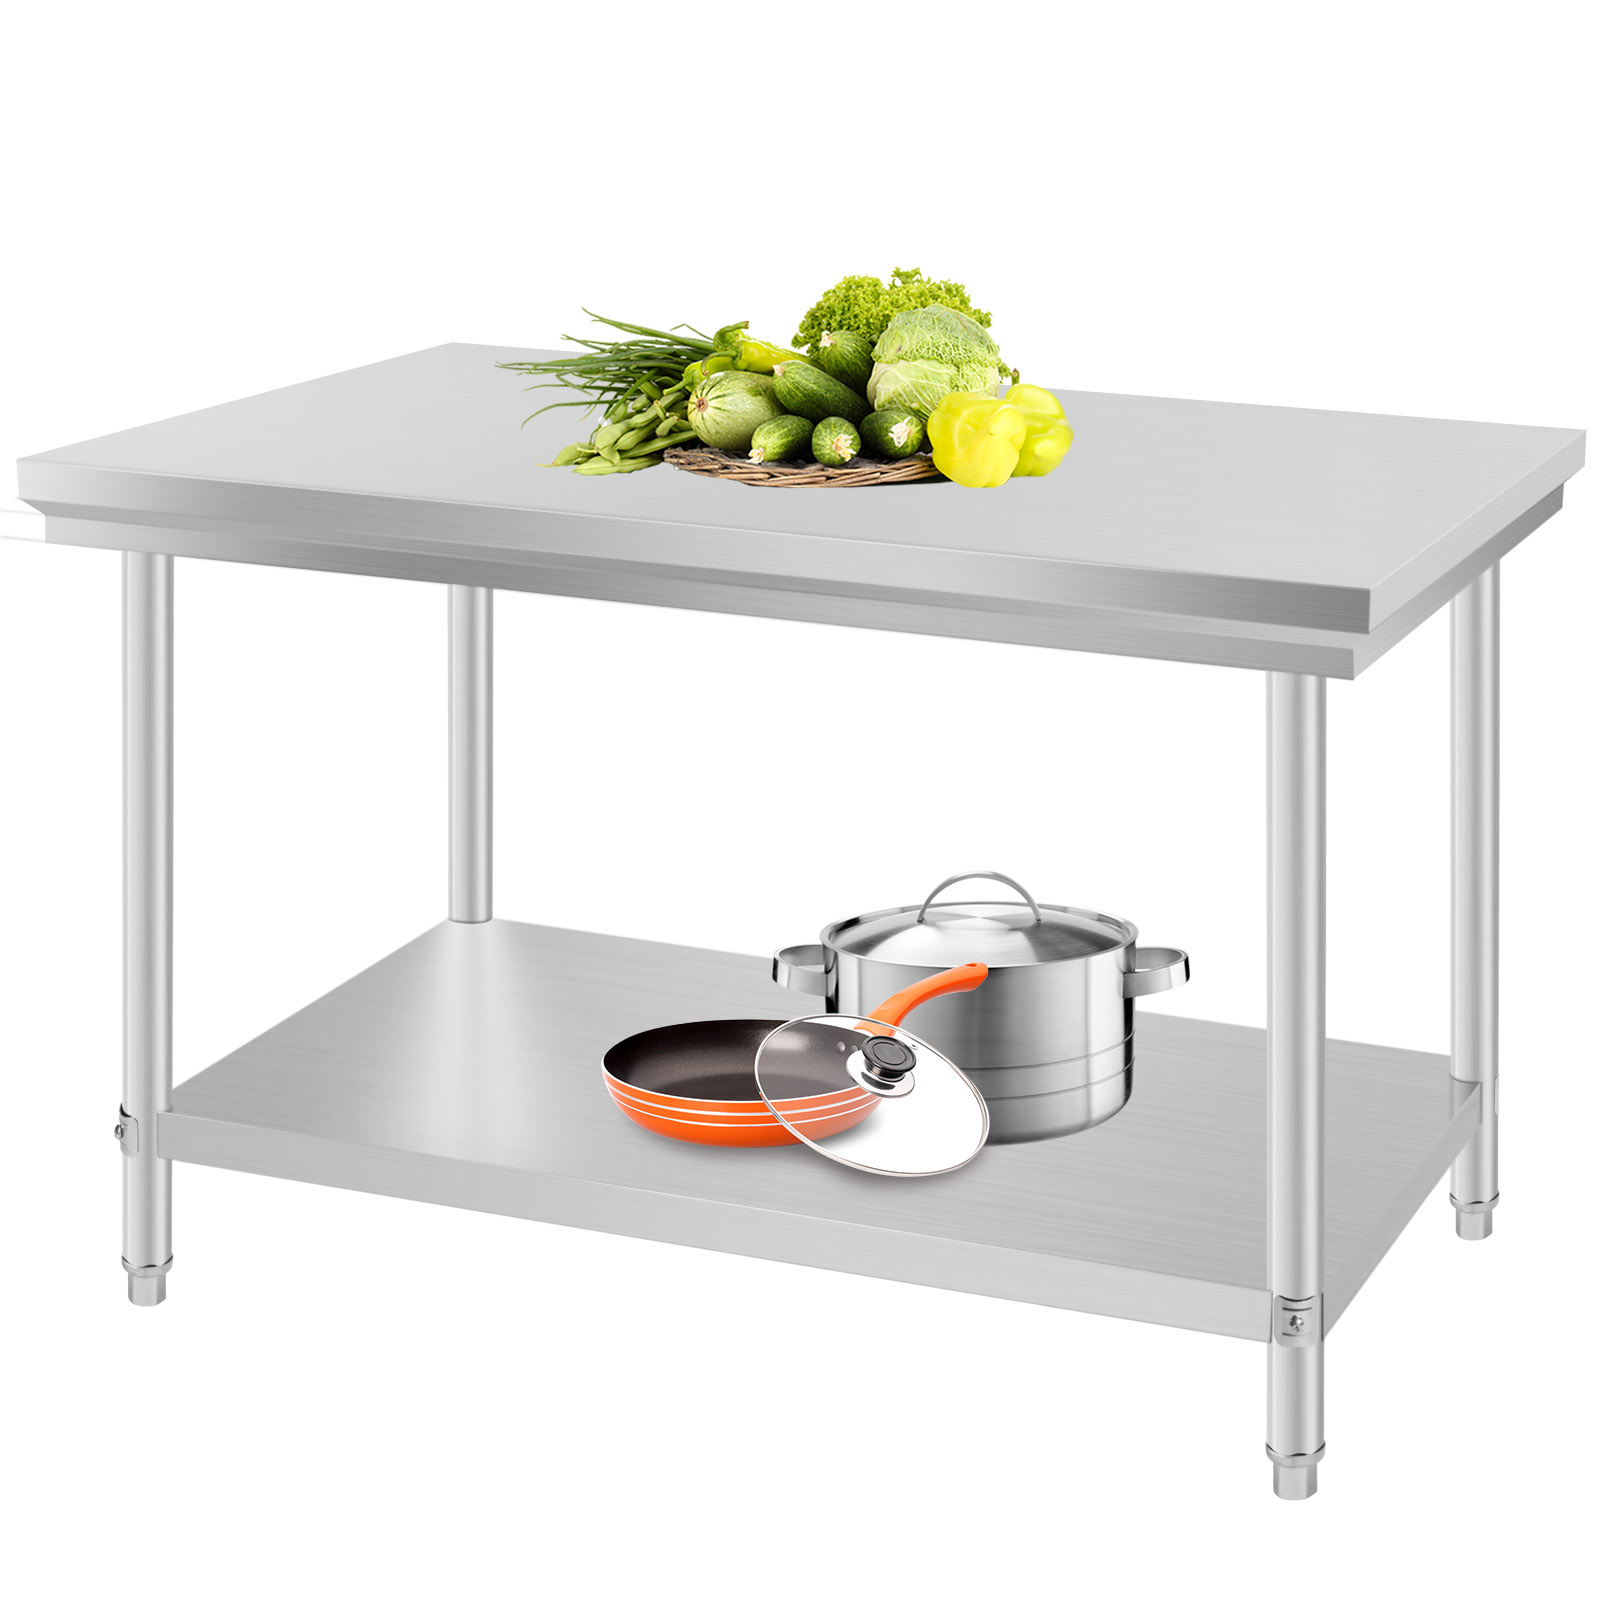 24 x 48 stainless steel kitchen work prep table storage for Kitchen table with storage